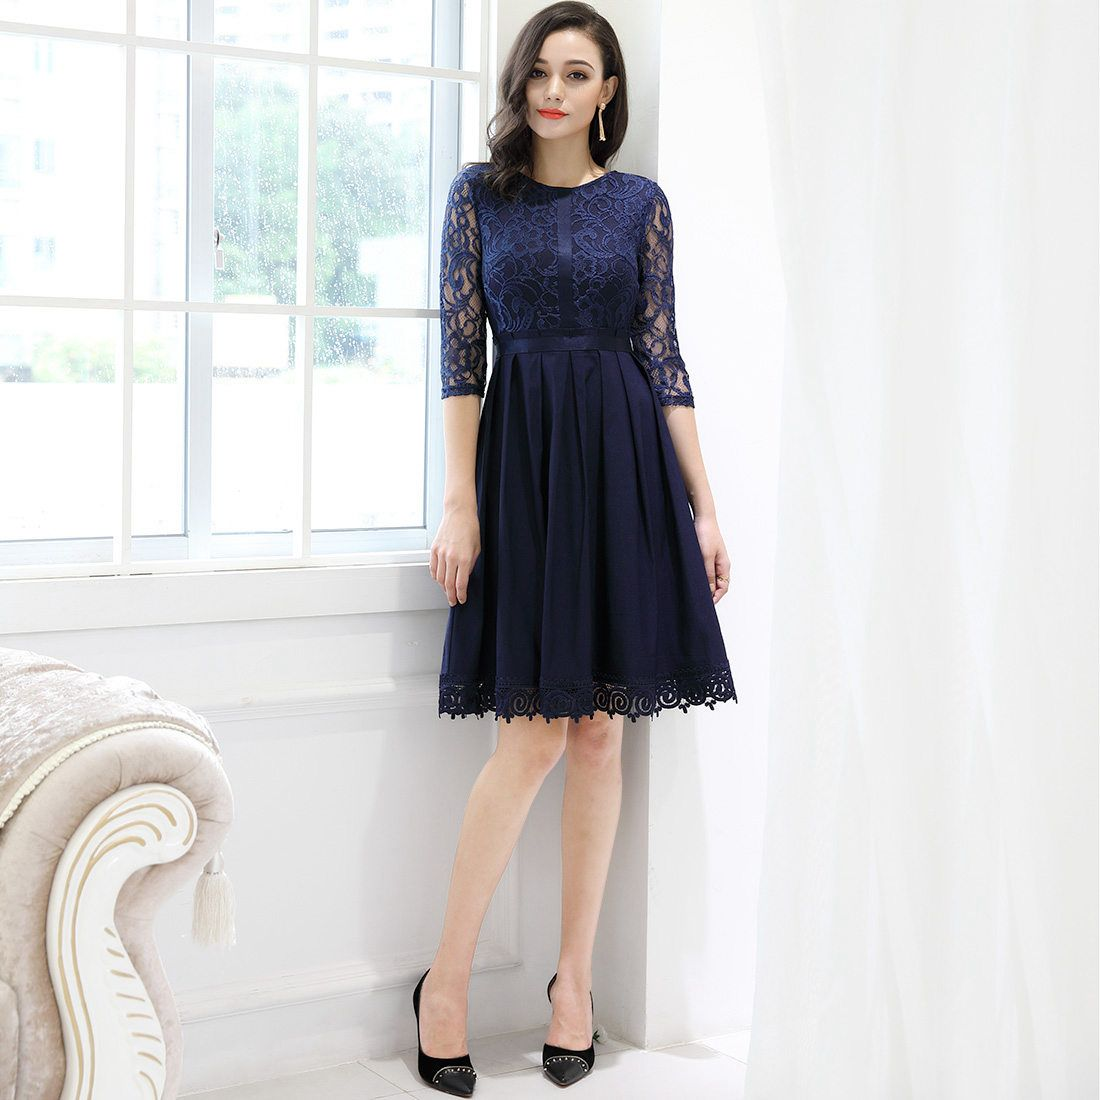 9b977c7e5575 MIUSOL Women's Vintage Half Sleeve Floral Lace Cocktail Party Pleated Swing  Dresses for Women (Navy Blue L)#Sleeve, #Floral, #Lace